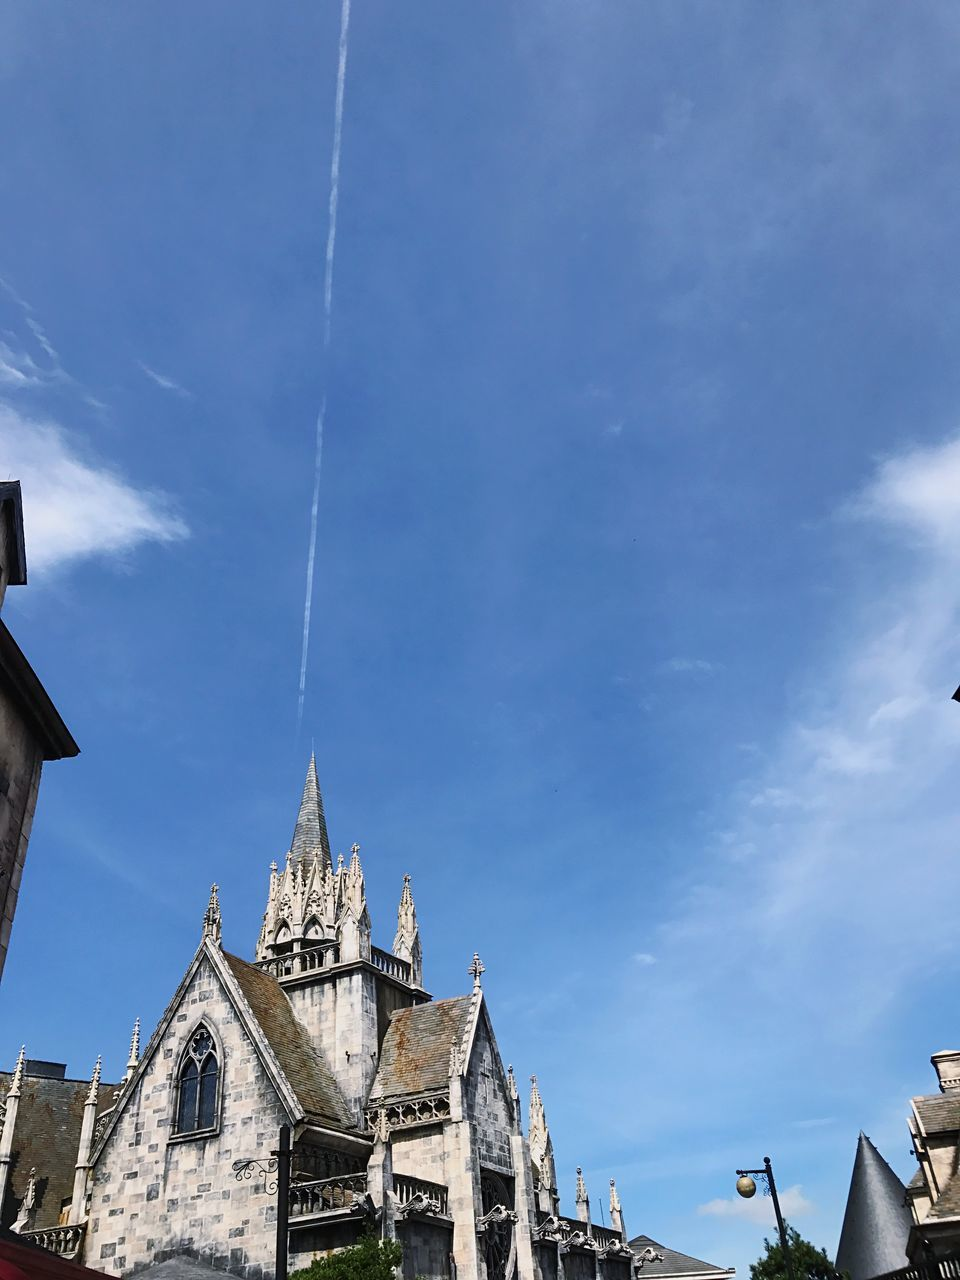 religion, architecture, place of worship, spirituality, built structure, building exterior, low angle view, day, no people, sky, outdoors, blue, vapor trail